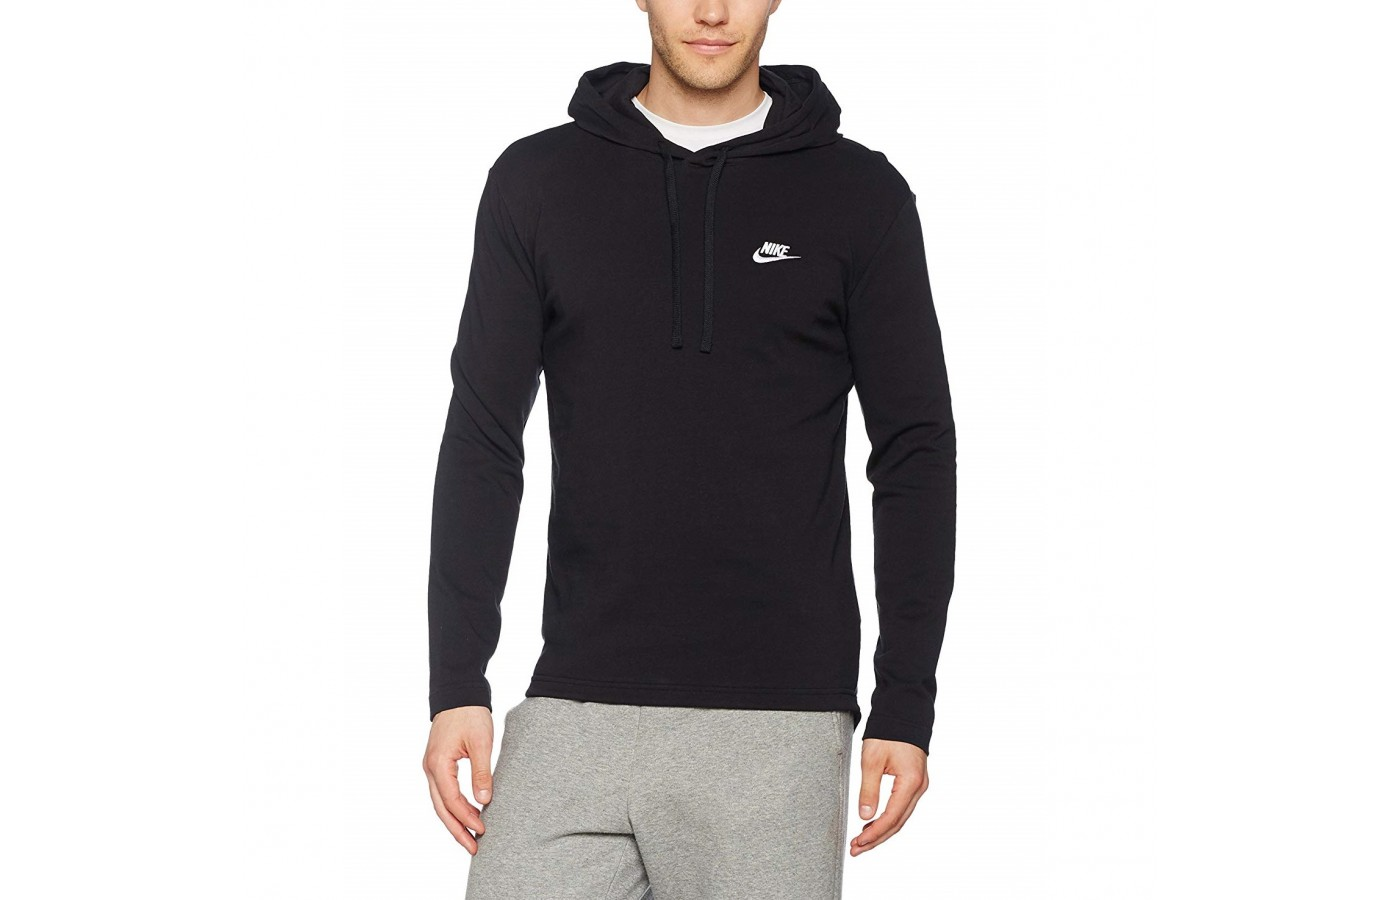 The Nike Club hoodie is offered in three different colors to suit individual styles.